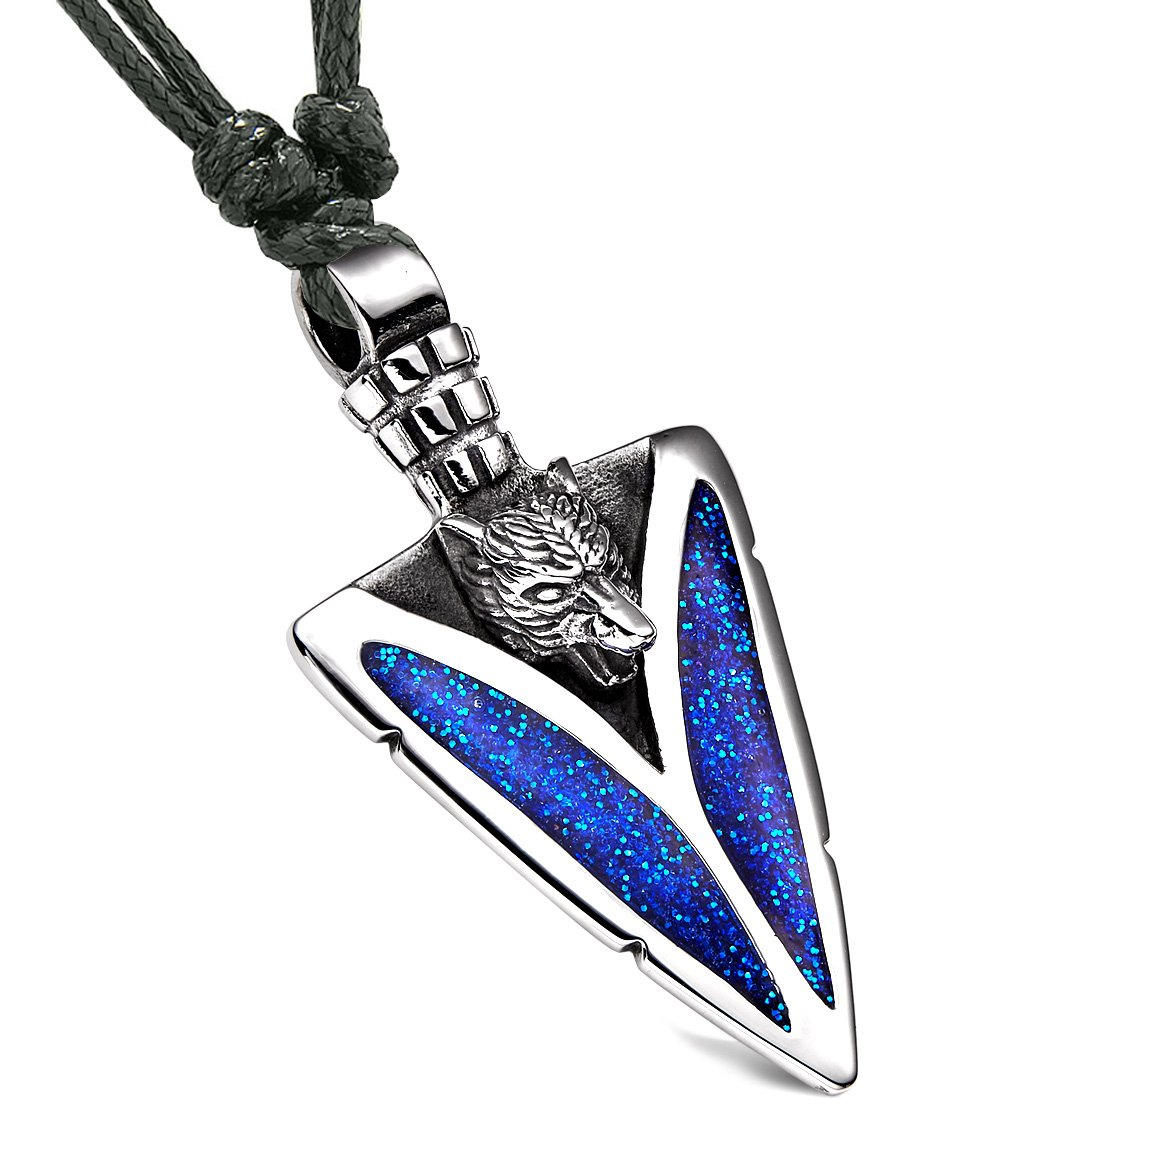 Arrowhead Howling Wolf Courage Powers Protection Amulet Sparkling Royal Blue Pendant Adjustable Necklace